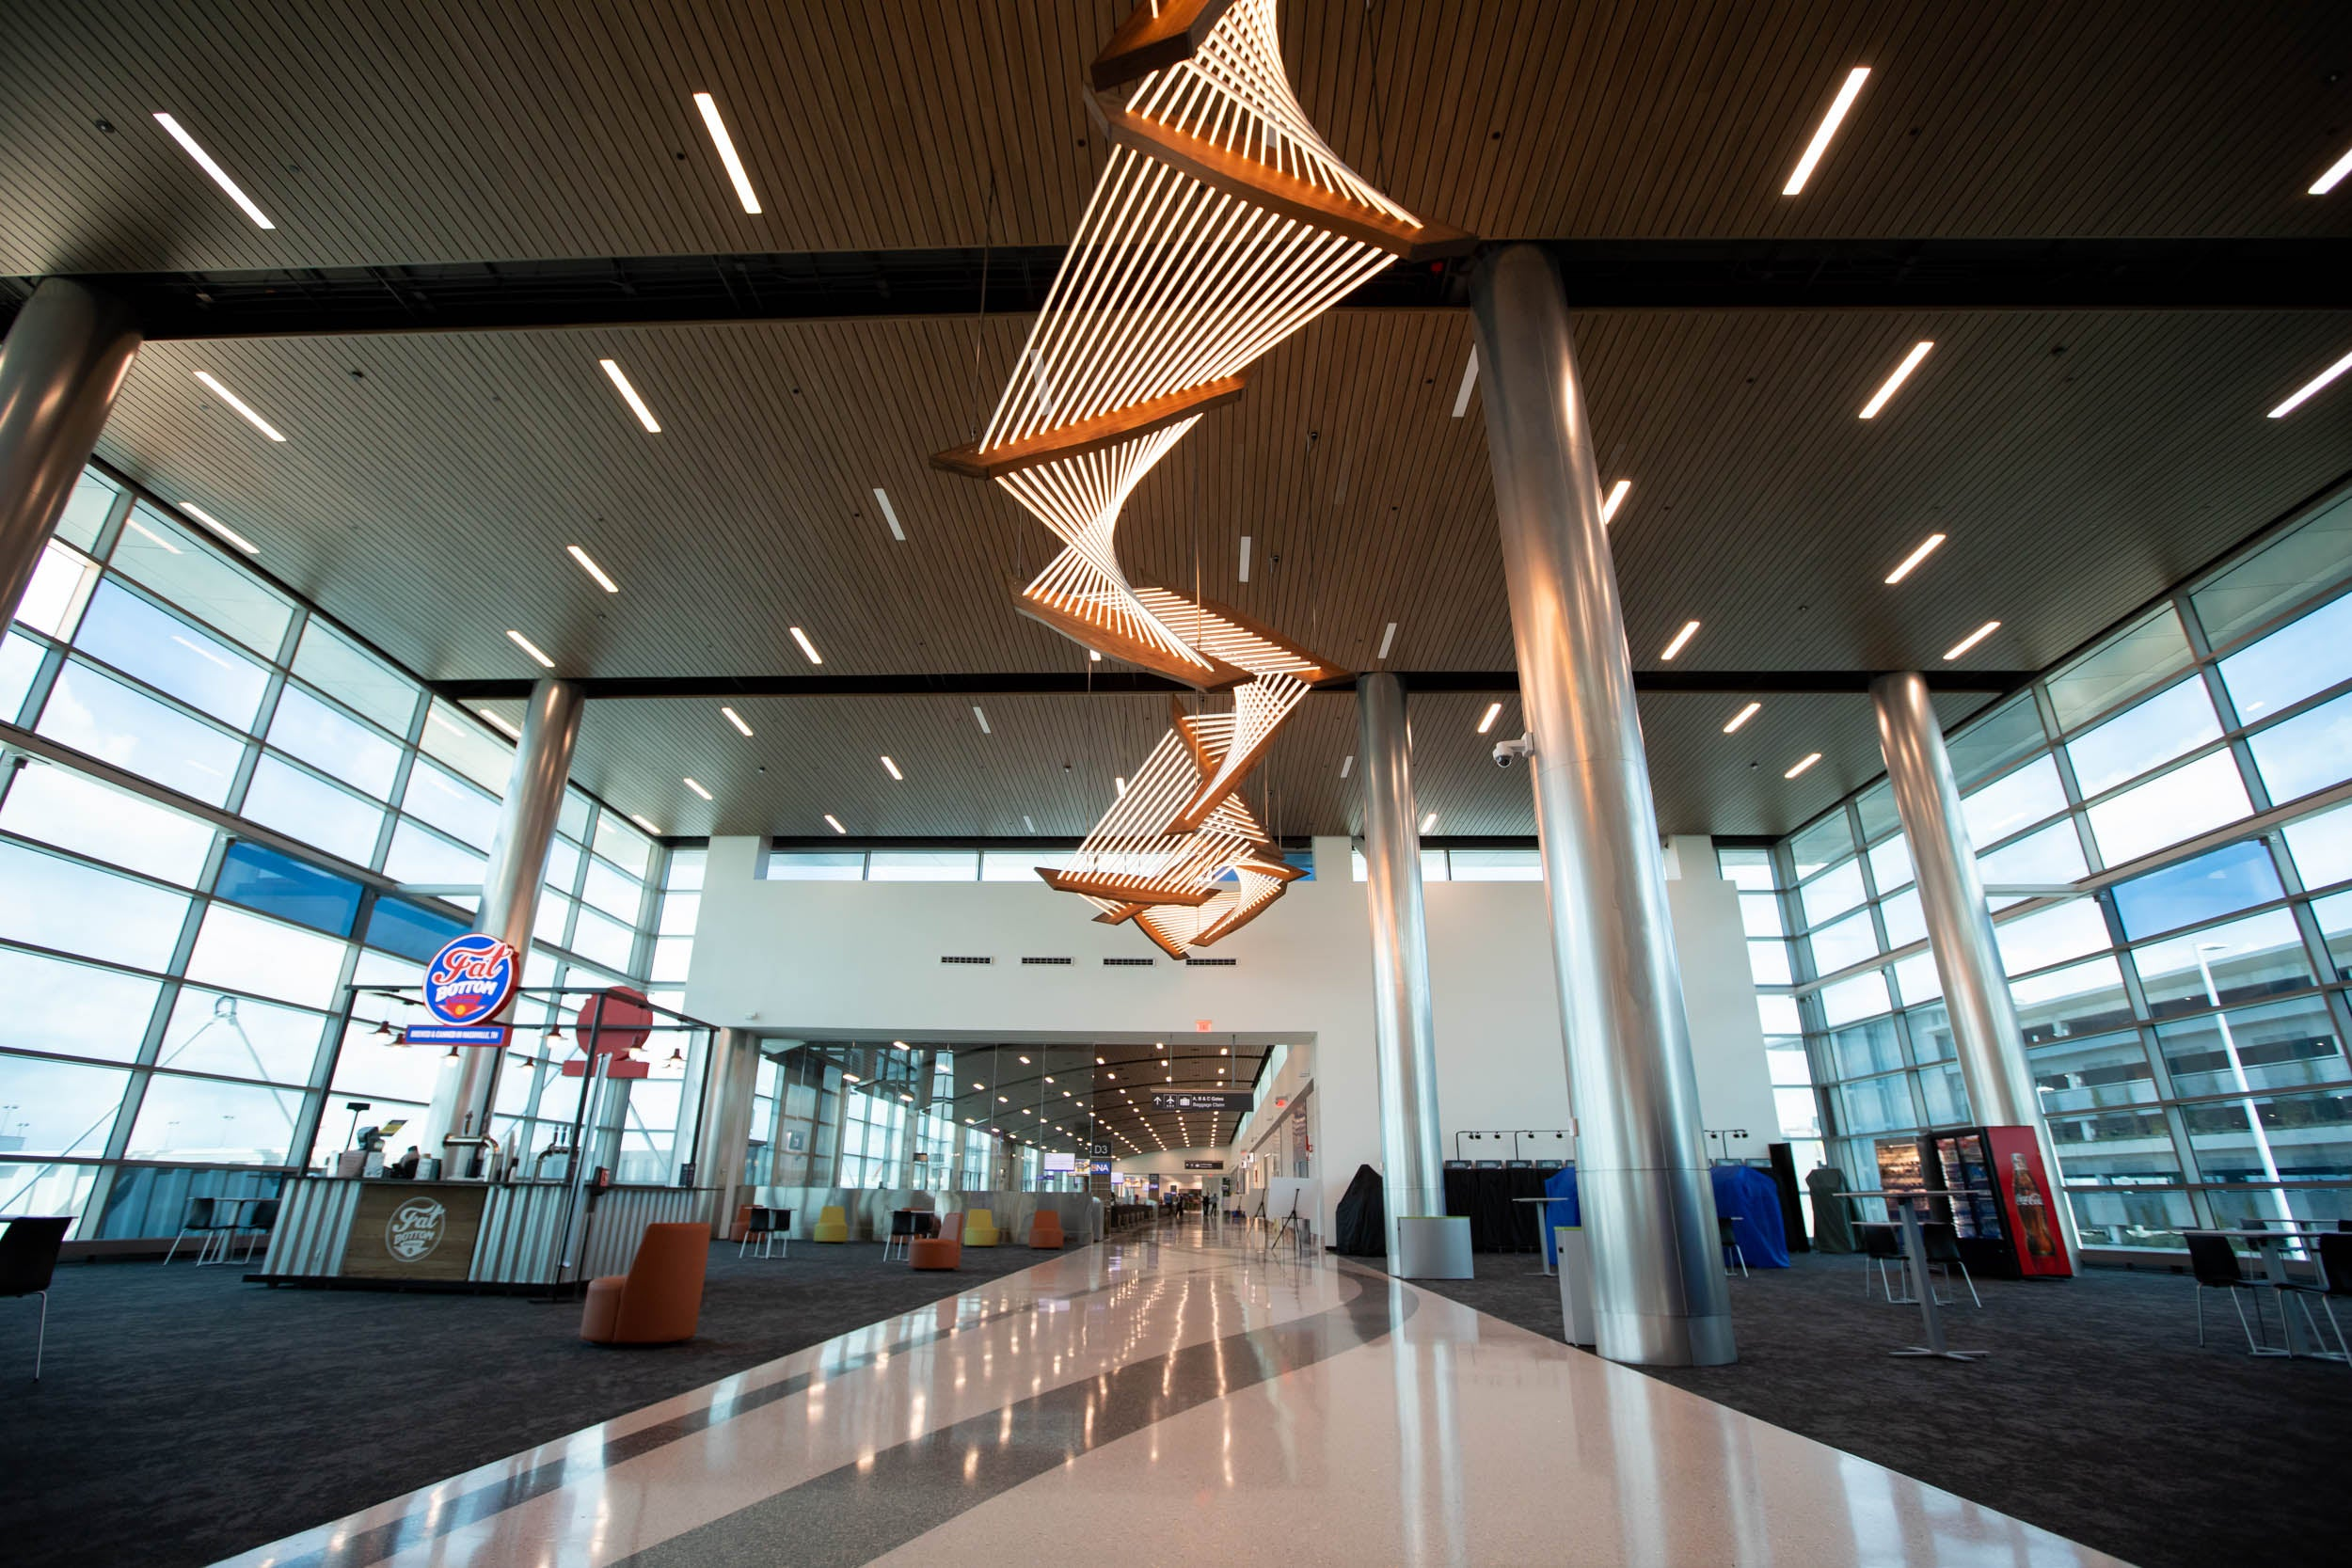 Nashville opens new concourse for Southwest Airlines